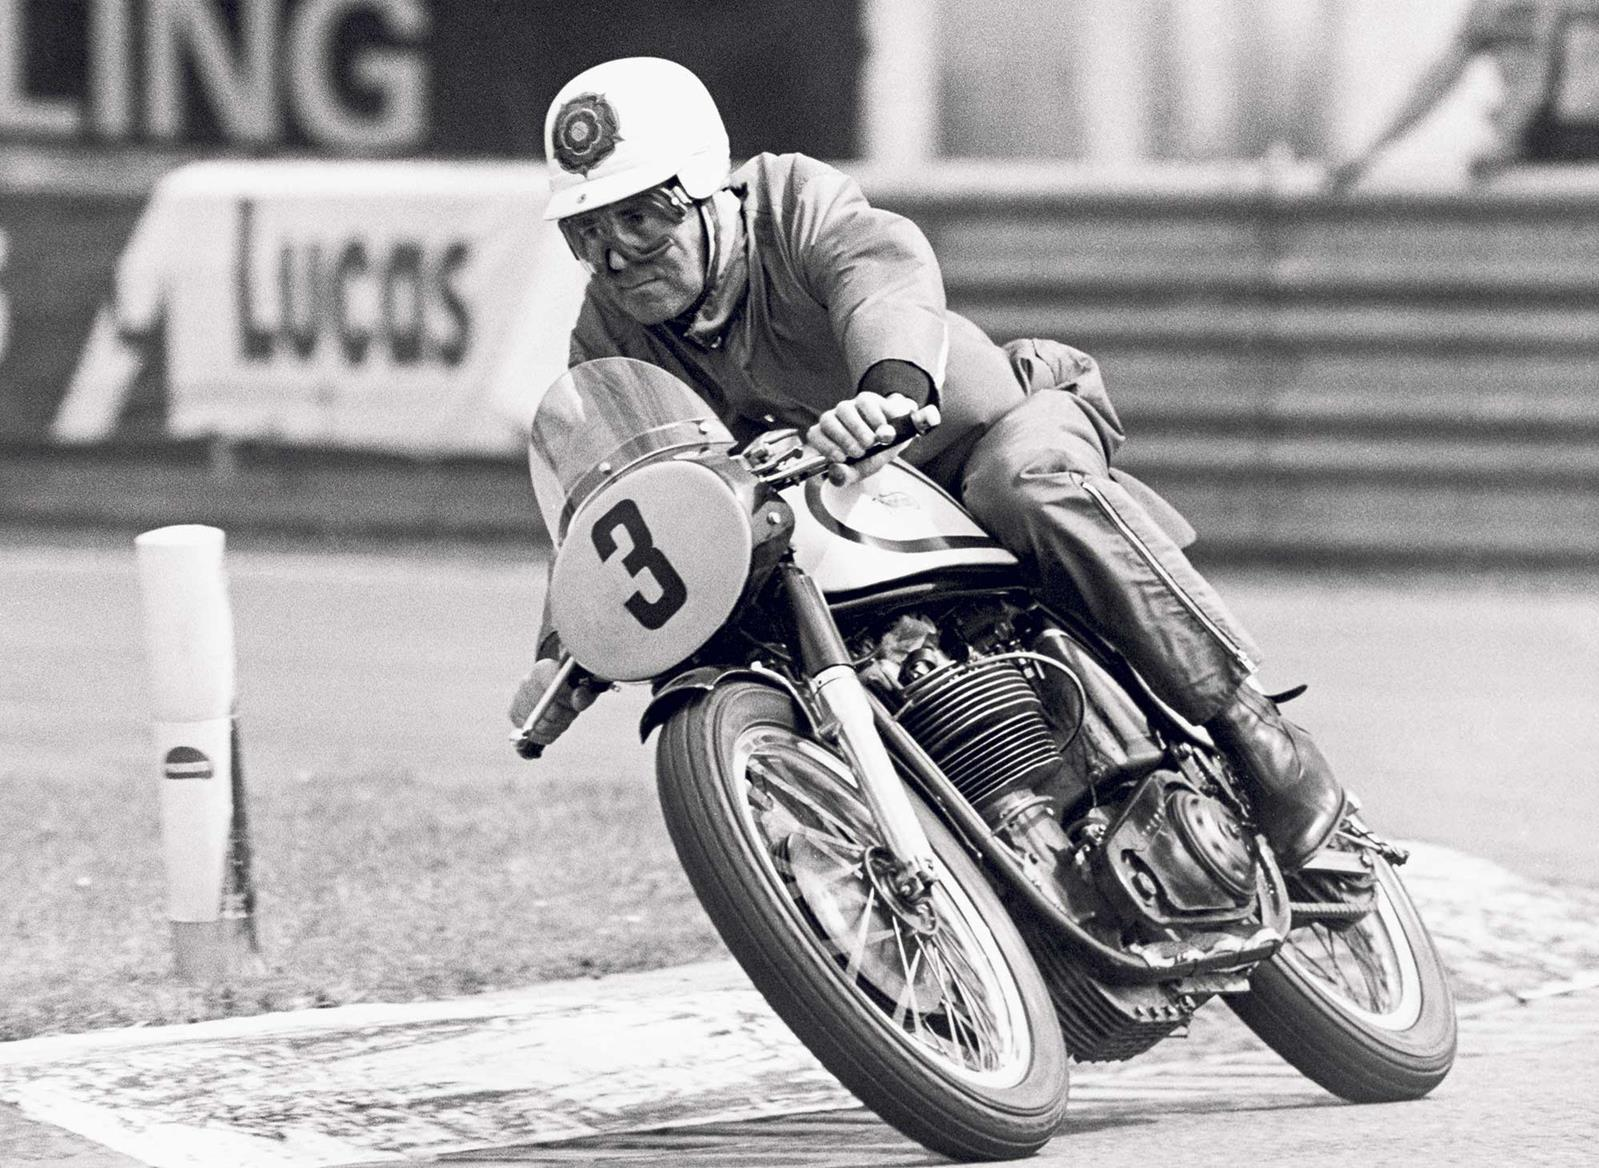 Geoff Duke's size and style fitted the Manx Norton perfectly